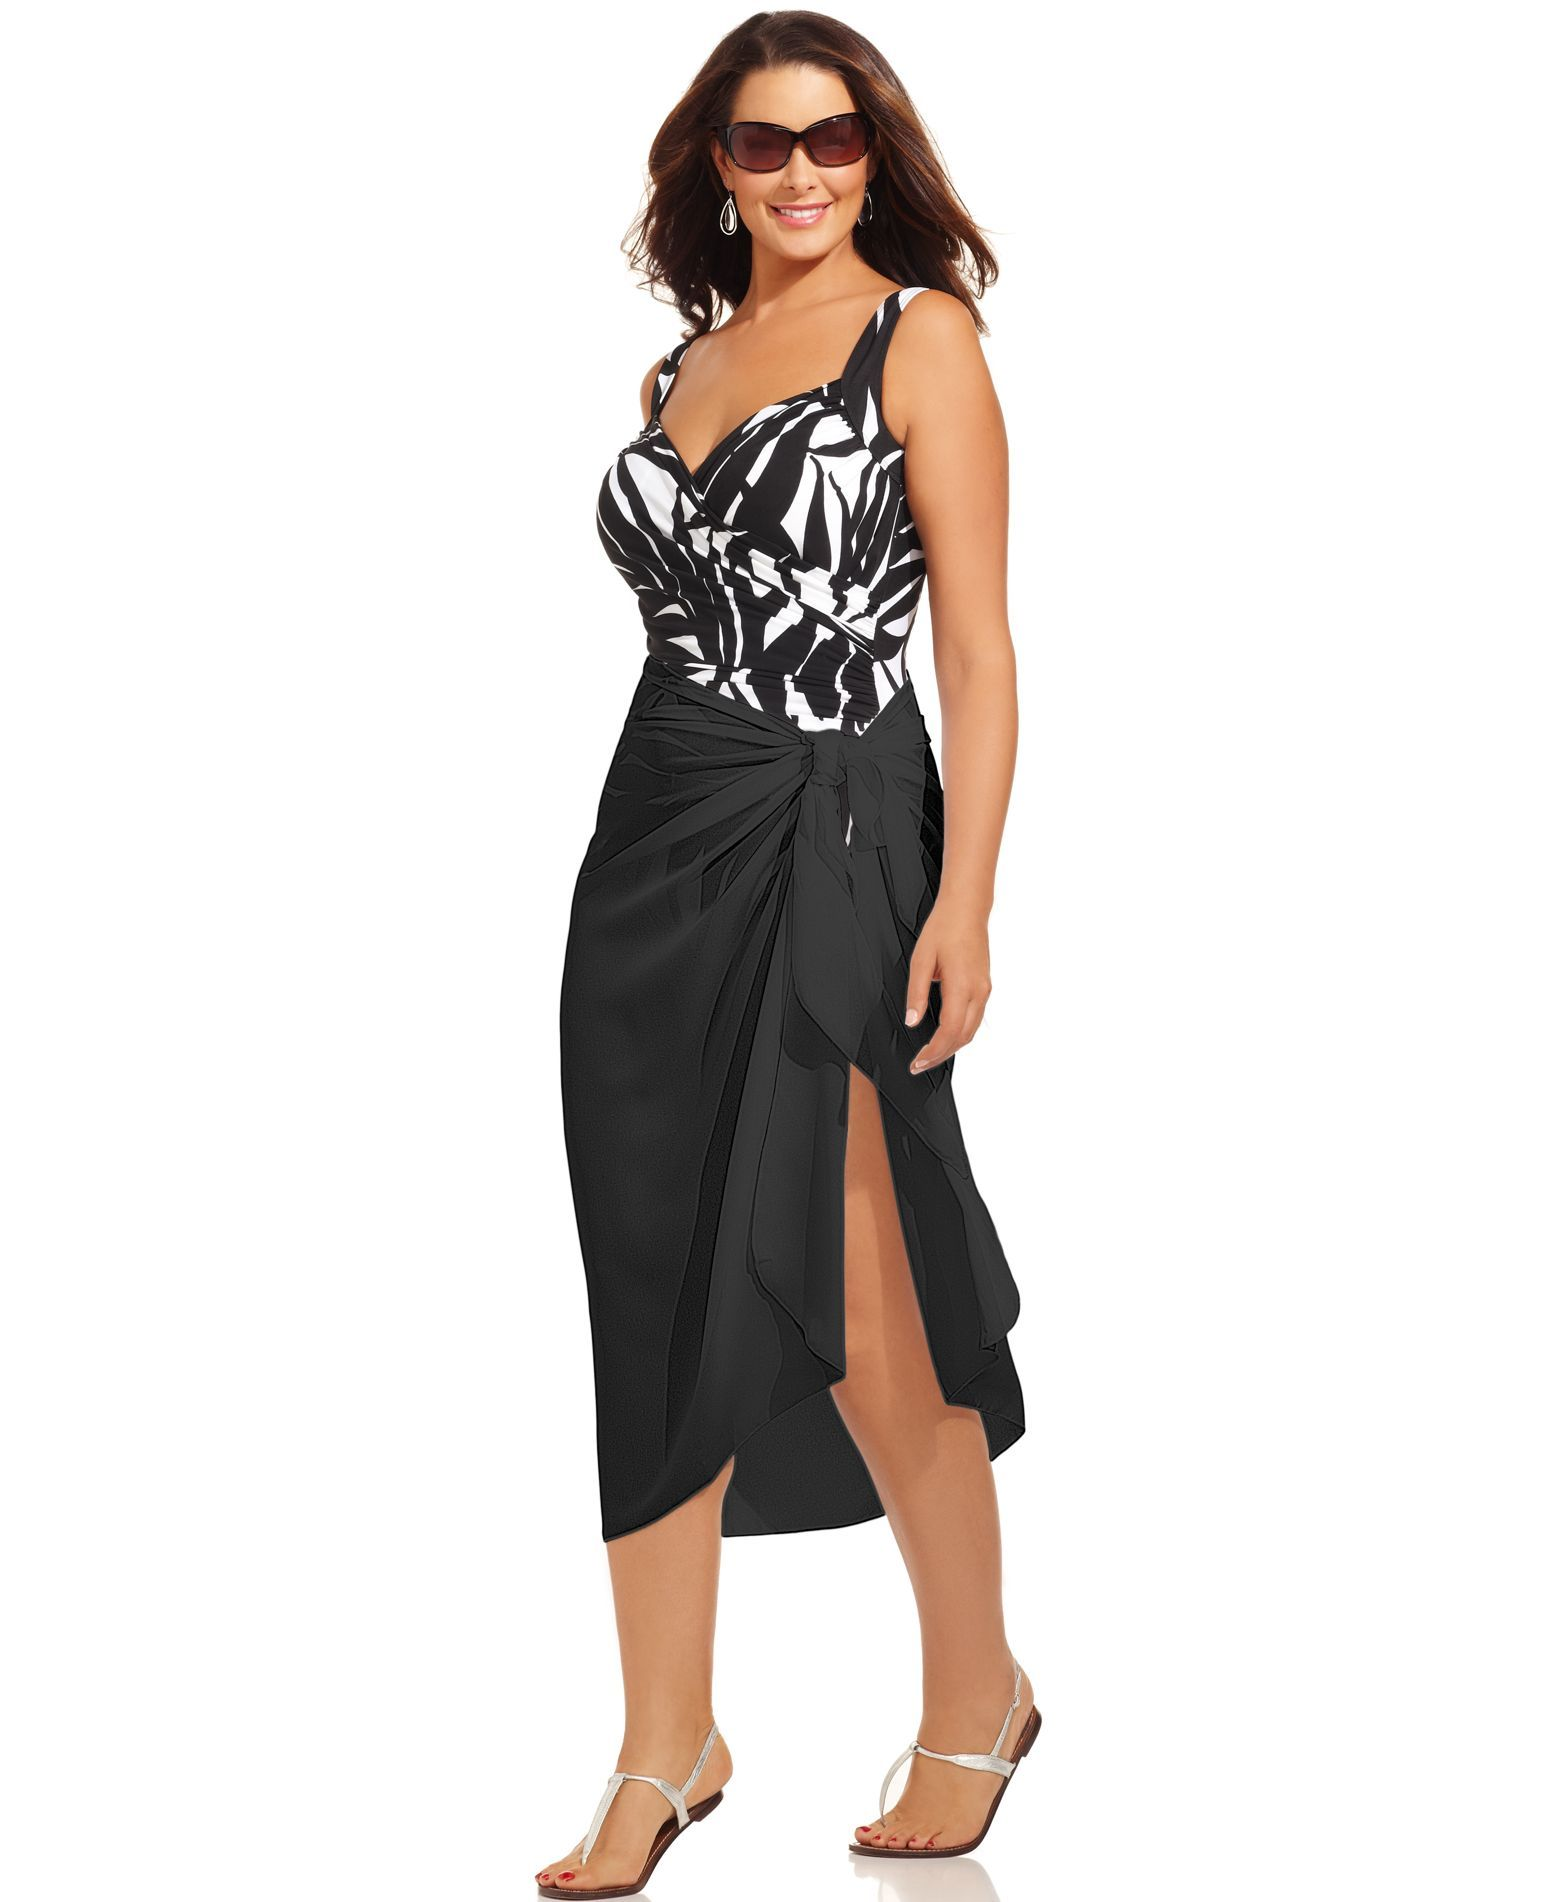 1132a64659 Dotti Plus Size Cover Up, Self-Tie Pareo Sarong | Products | Plus ...